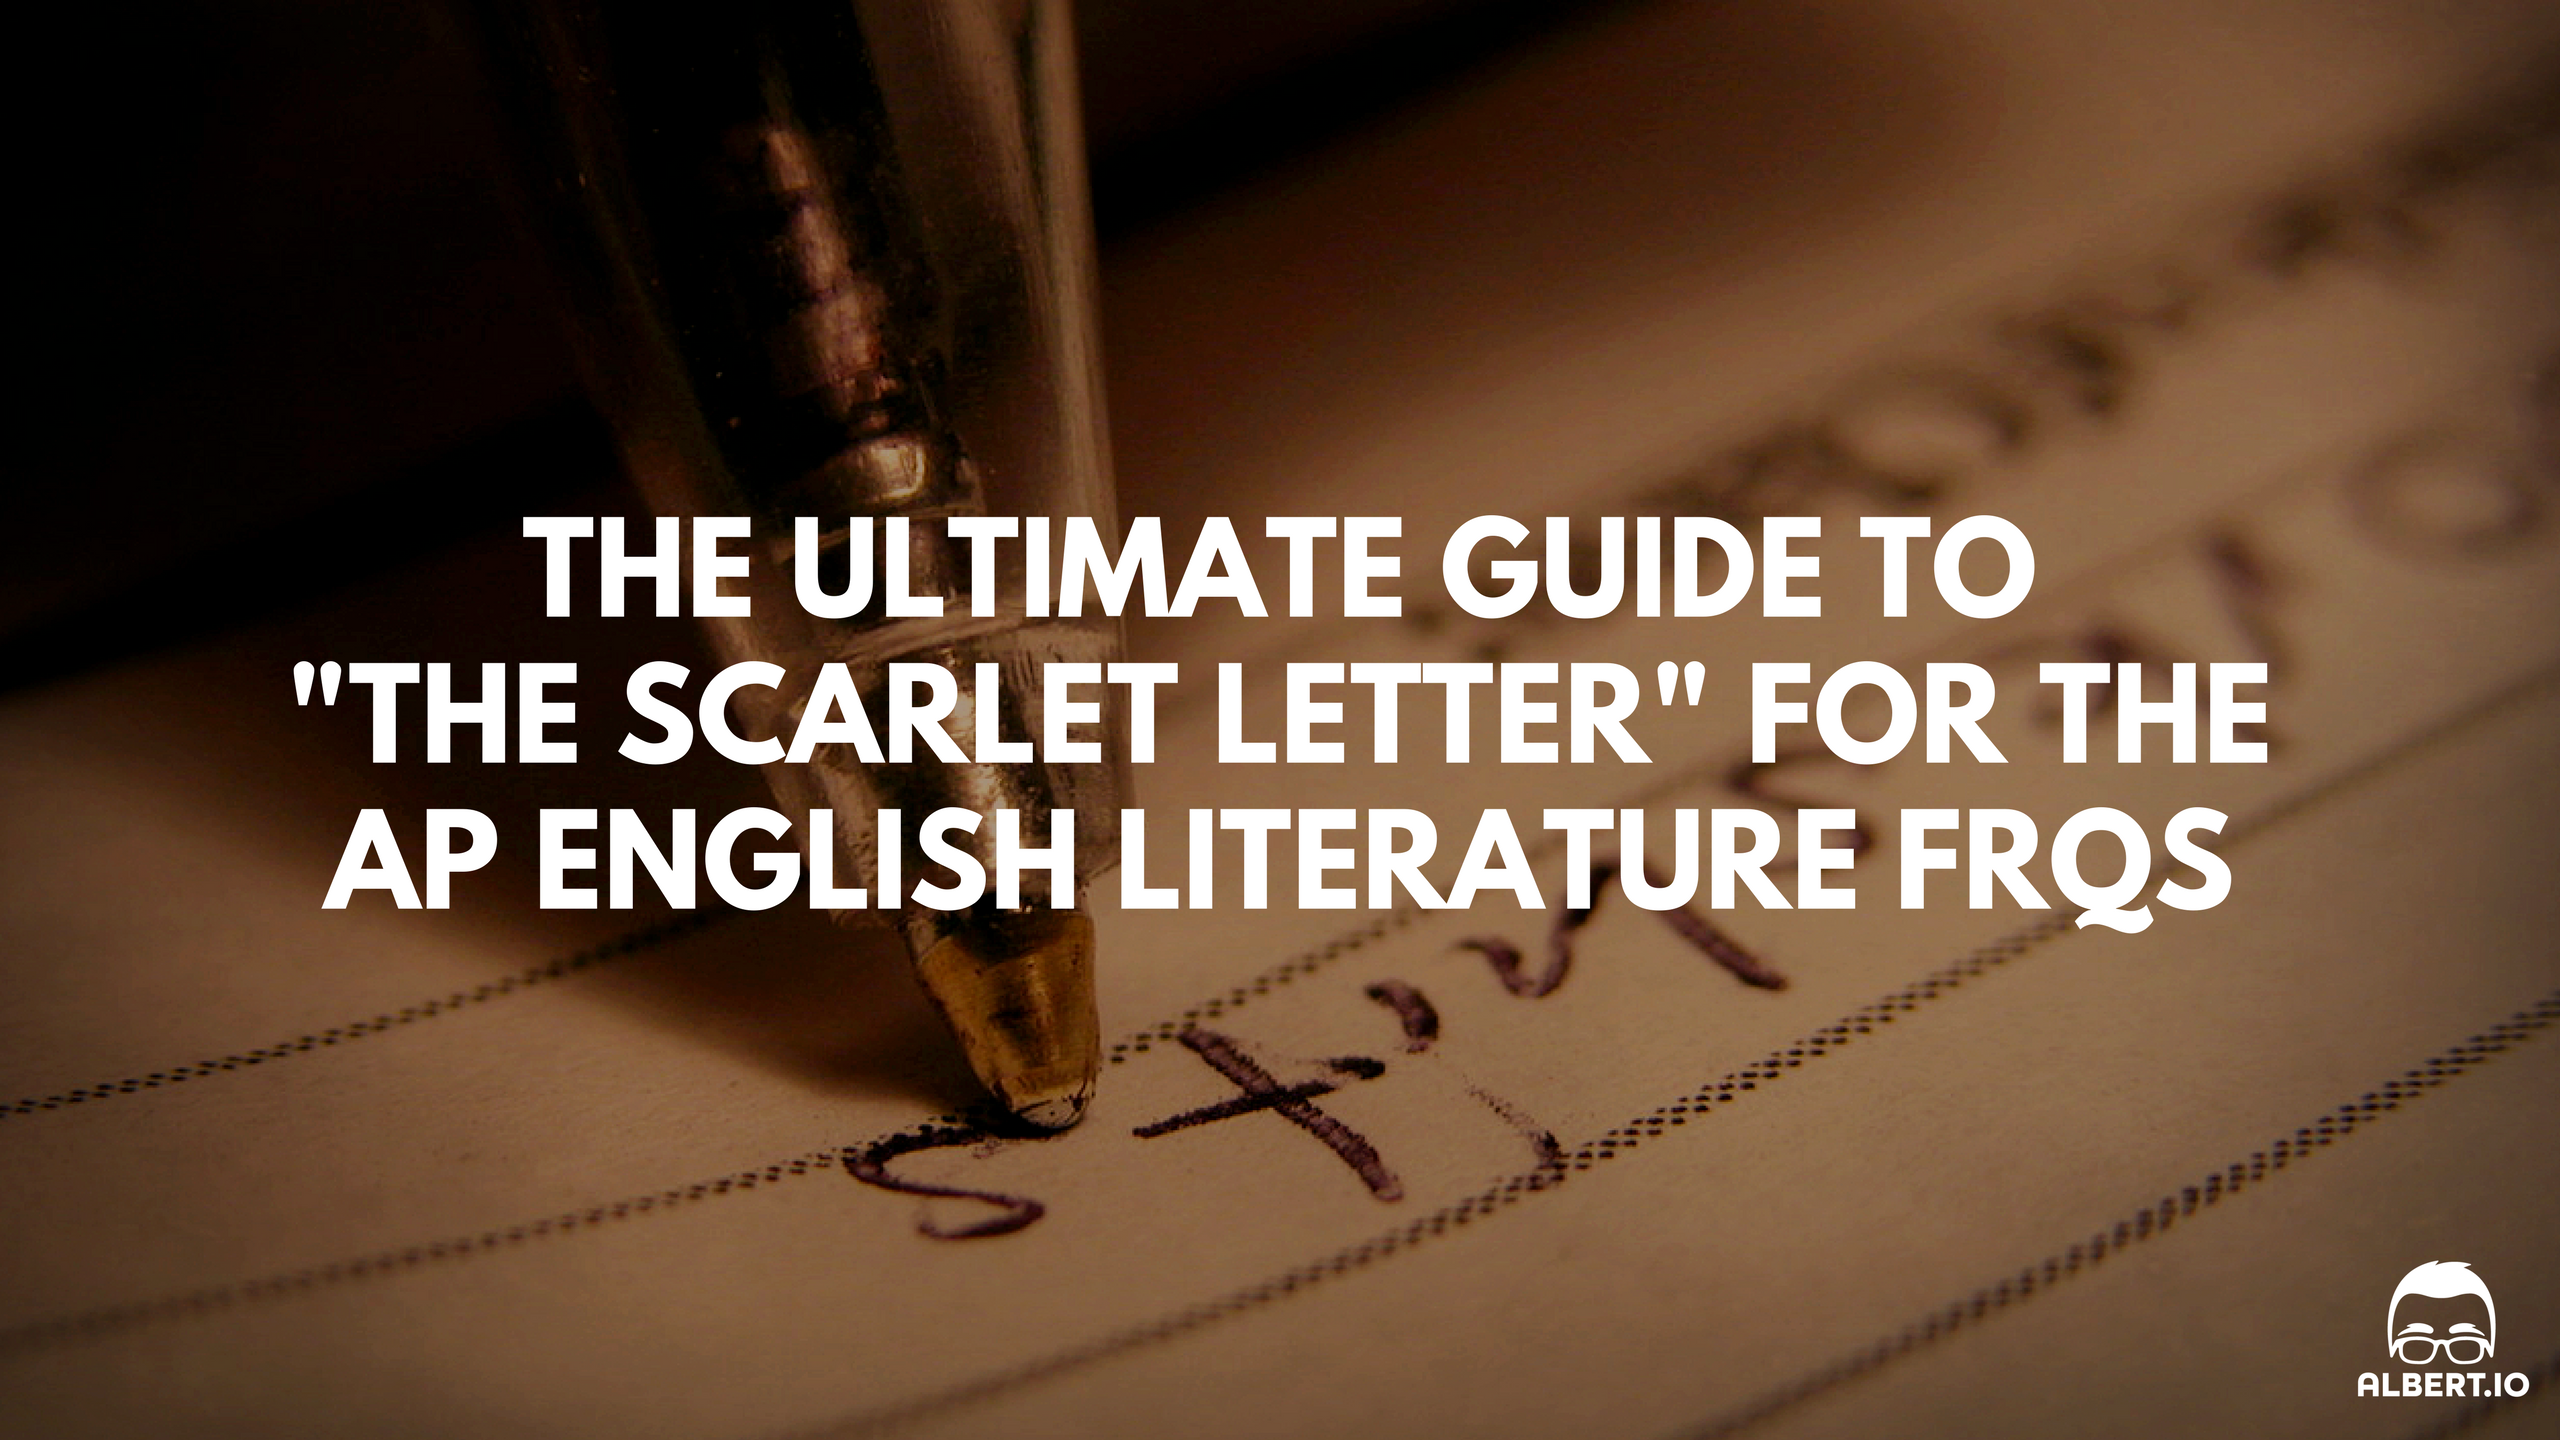 the ultimate guide to the scarlet letter